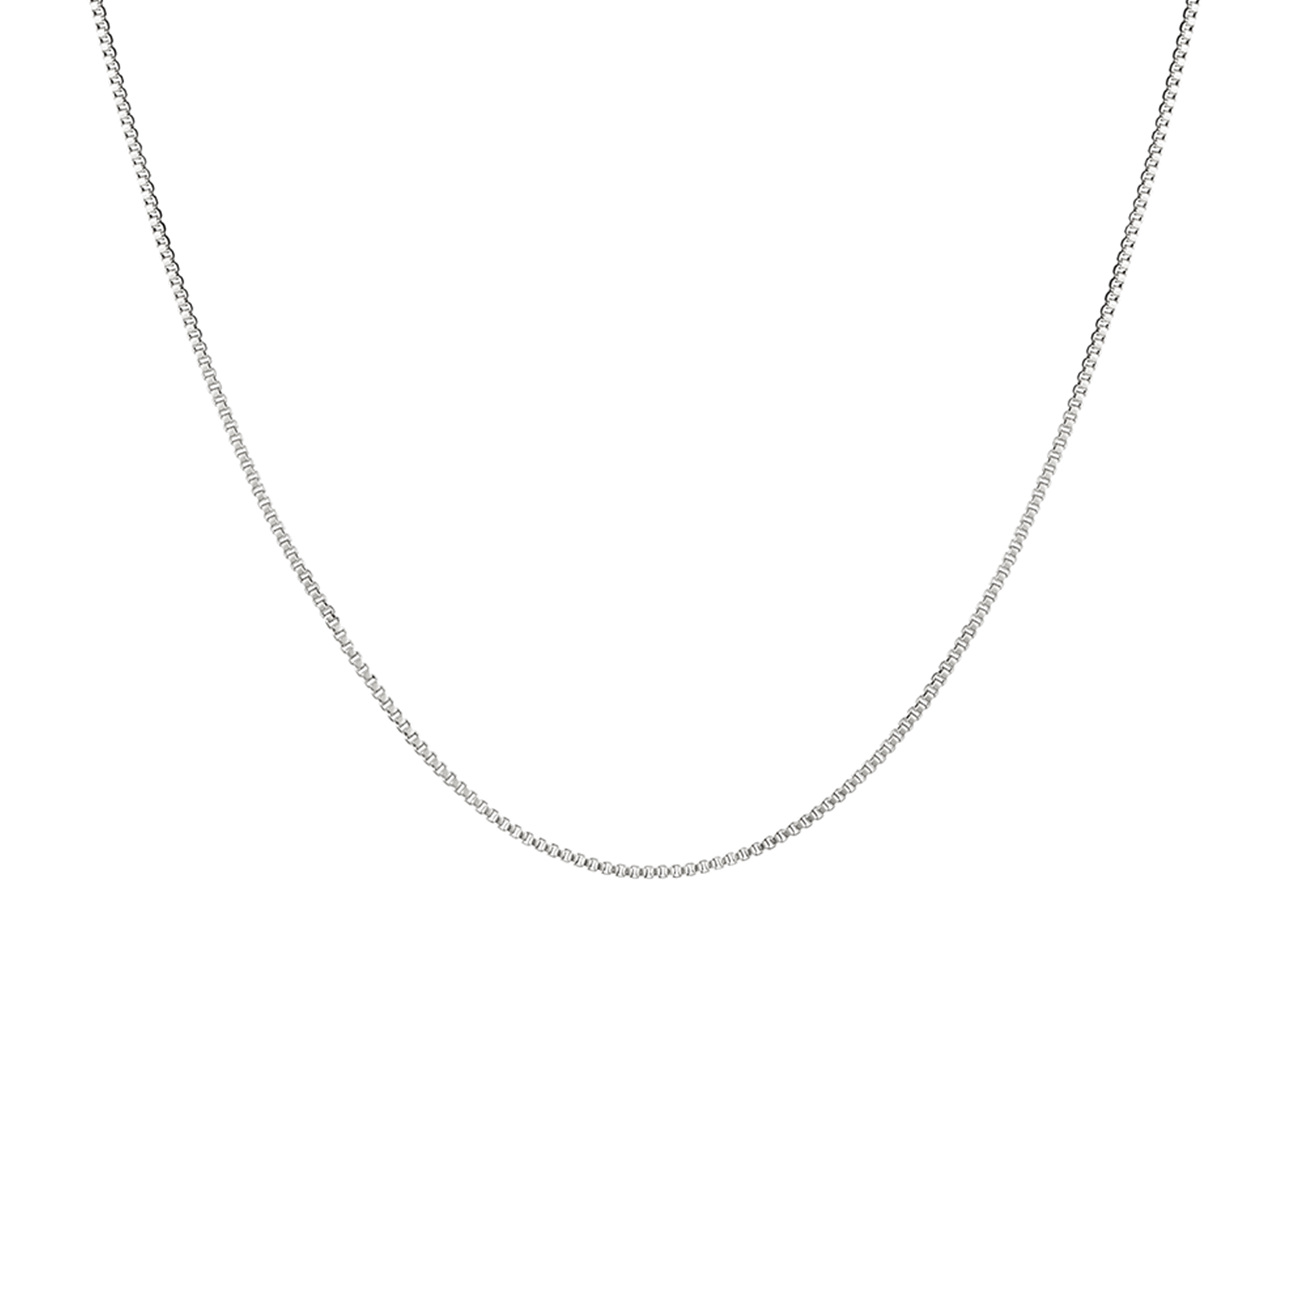 Long, thin silver box Corey Chain necklace by JENNY BIRD